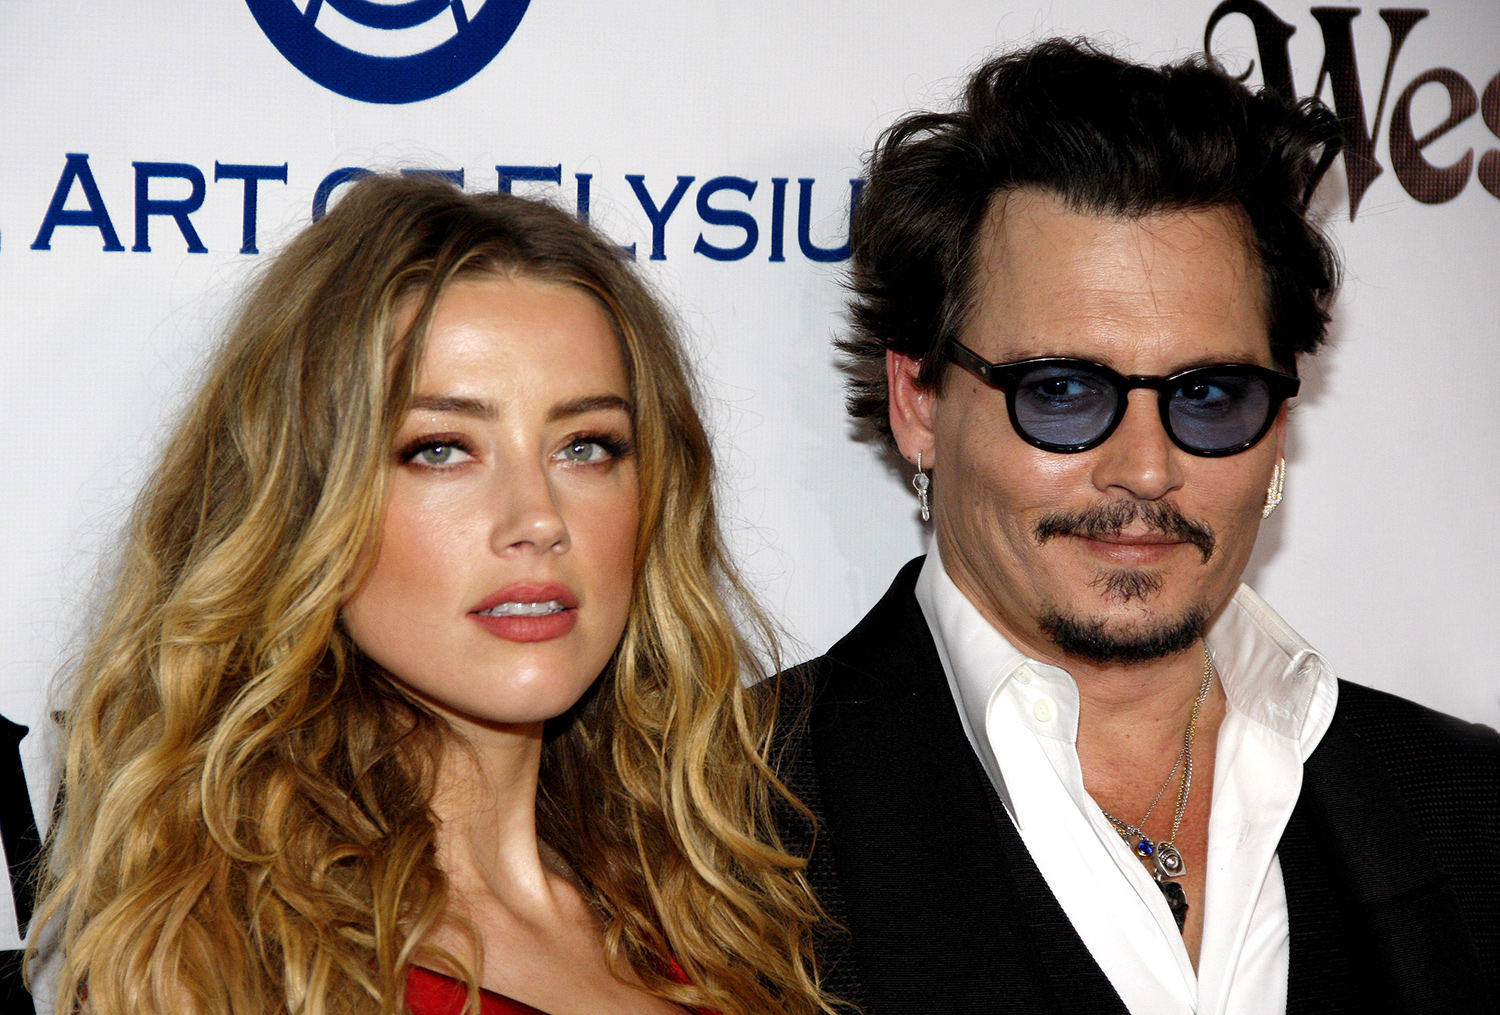 Johnny Depp beat his wife's face with iPhone (photo)